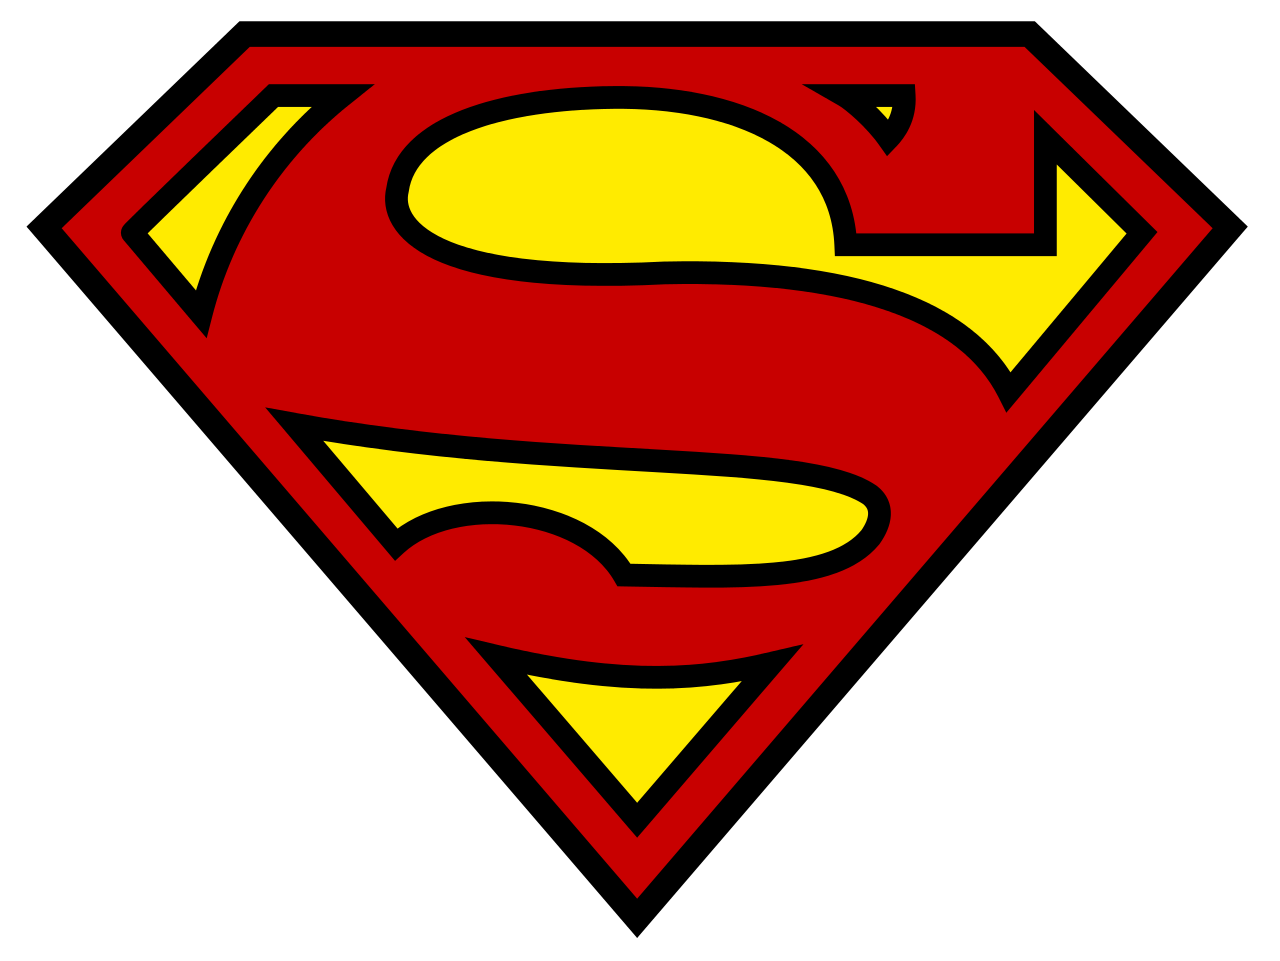 Apple outline with superman image clipart royalty free stock Superman logo - Wikipedia royalty free stock